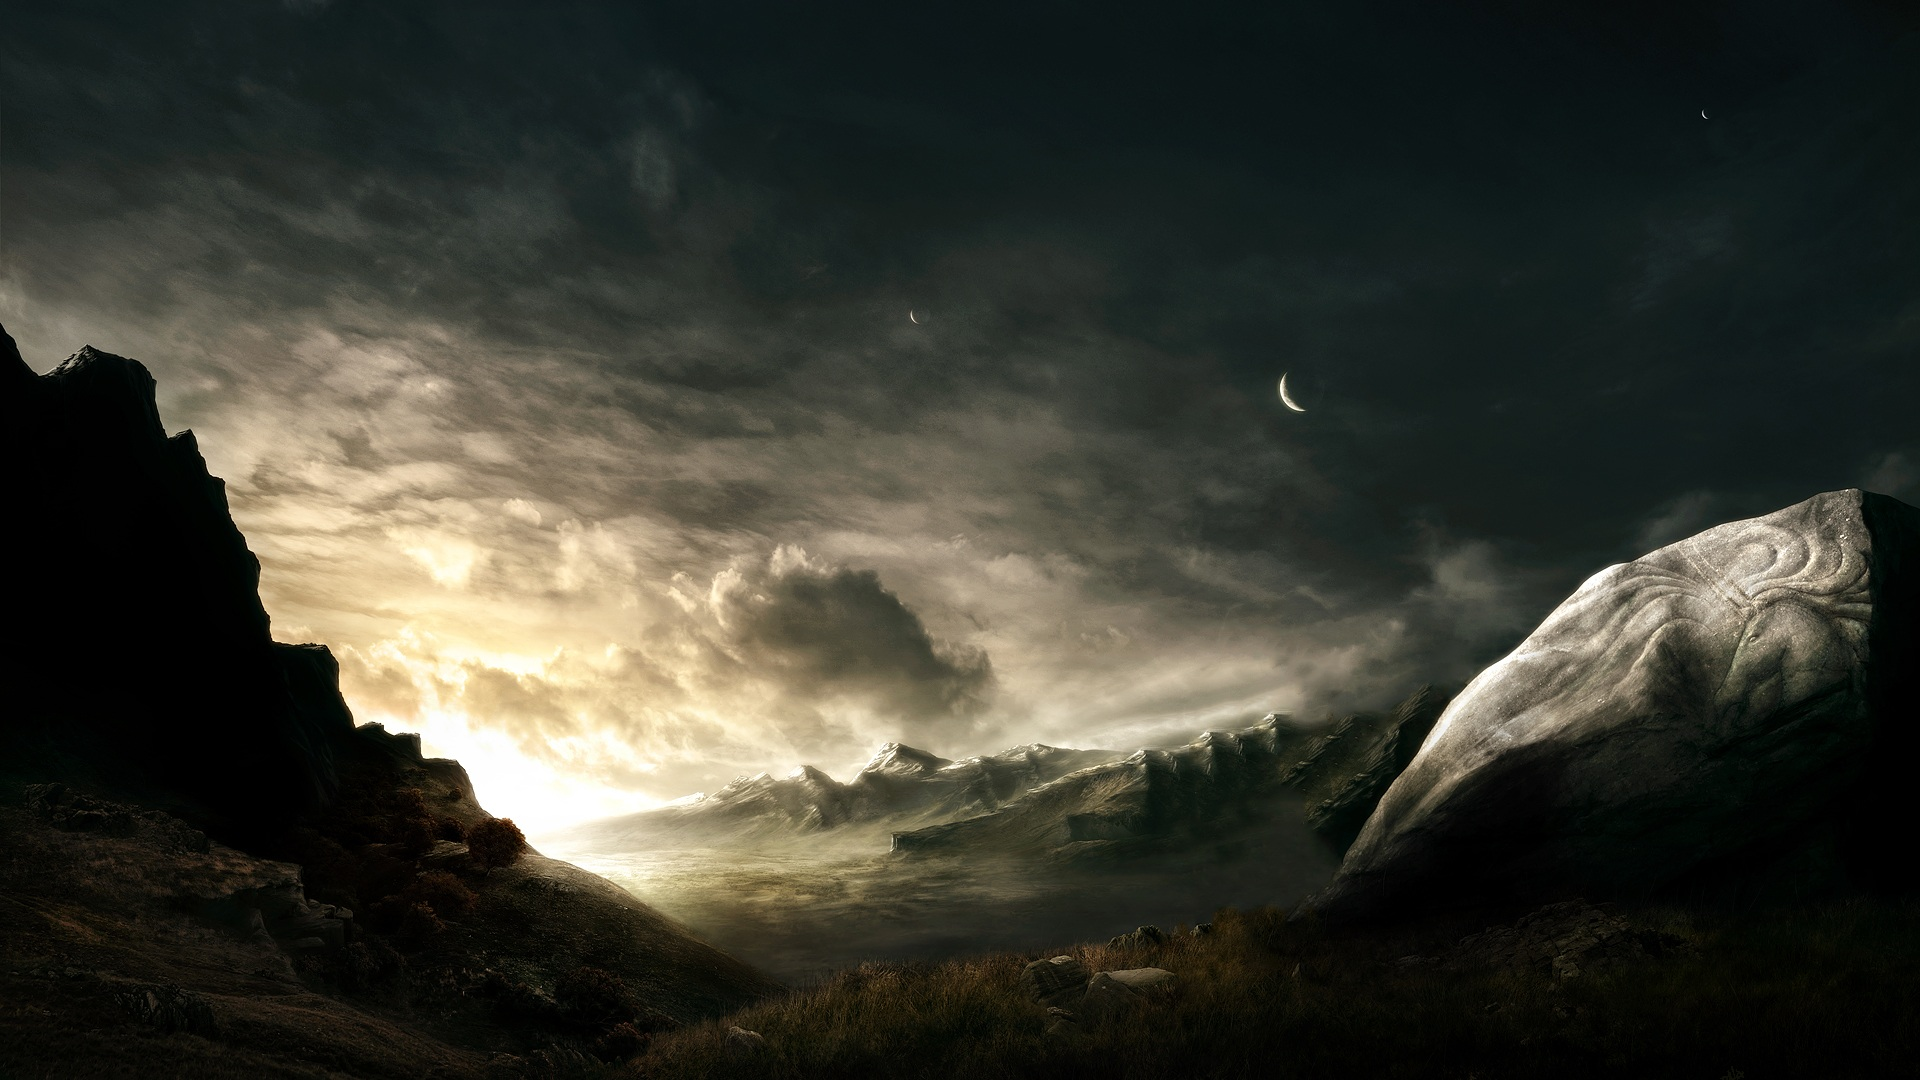 landscape Sci Fi Wallpaper Background 40883 1920x1080